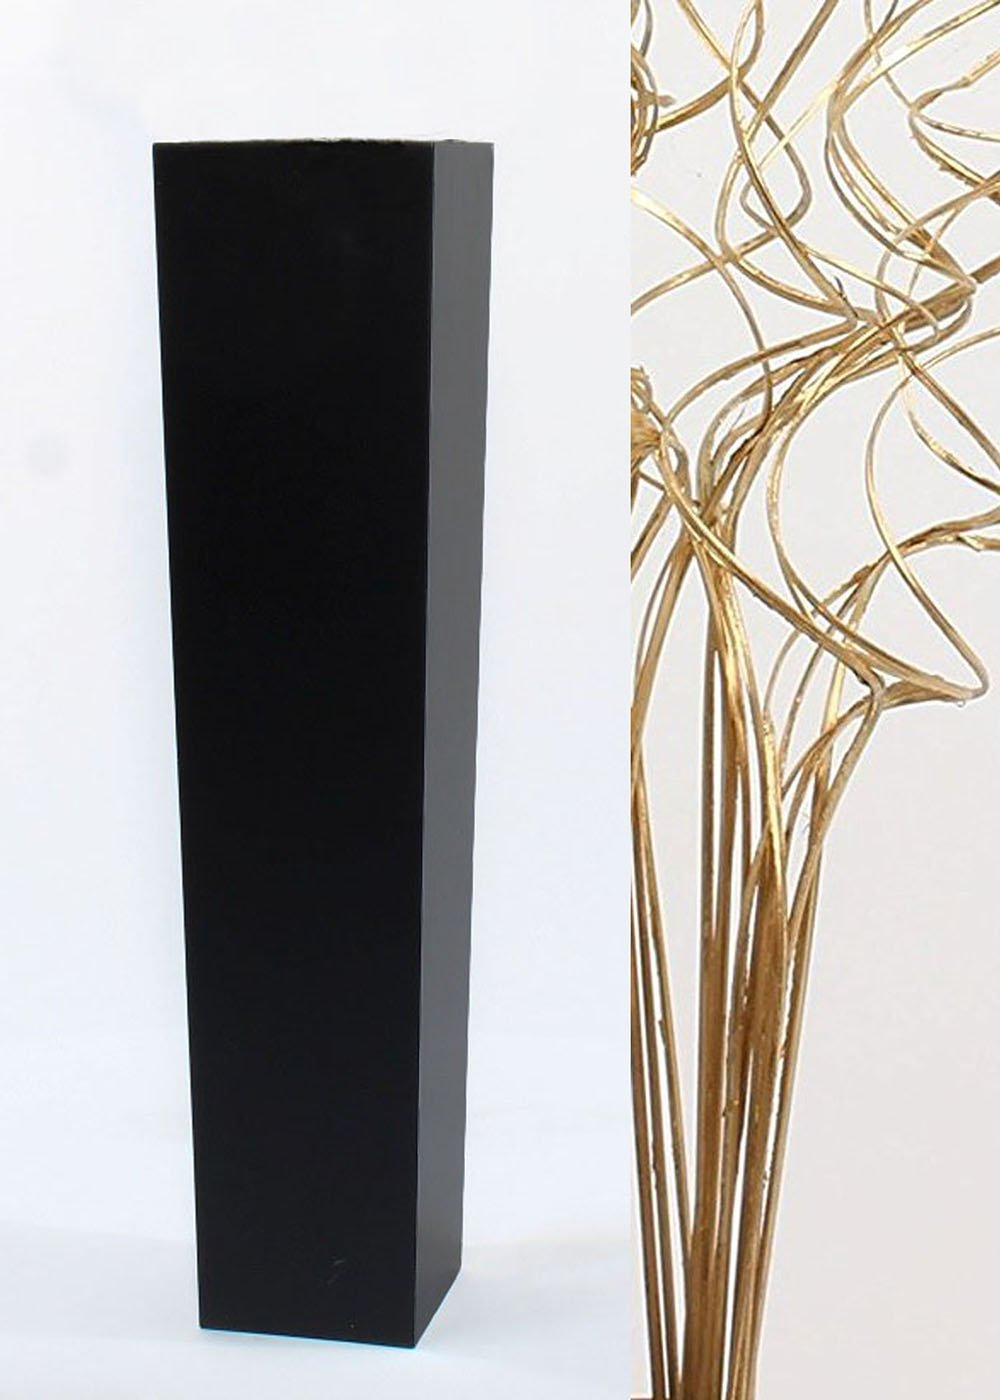 Green Floral Crafts Gold Branches in Slender Tapered Black Floor Vase - 27 in.H x 6 in. Opening